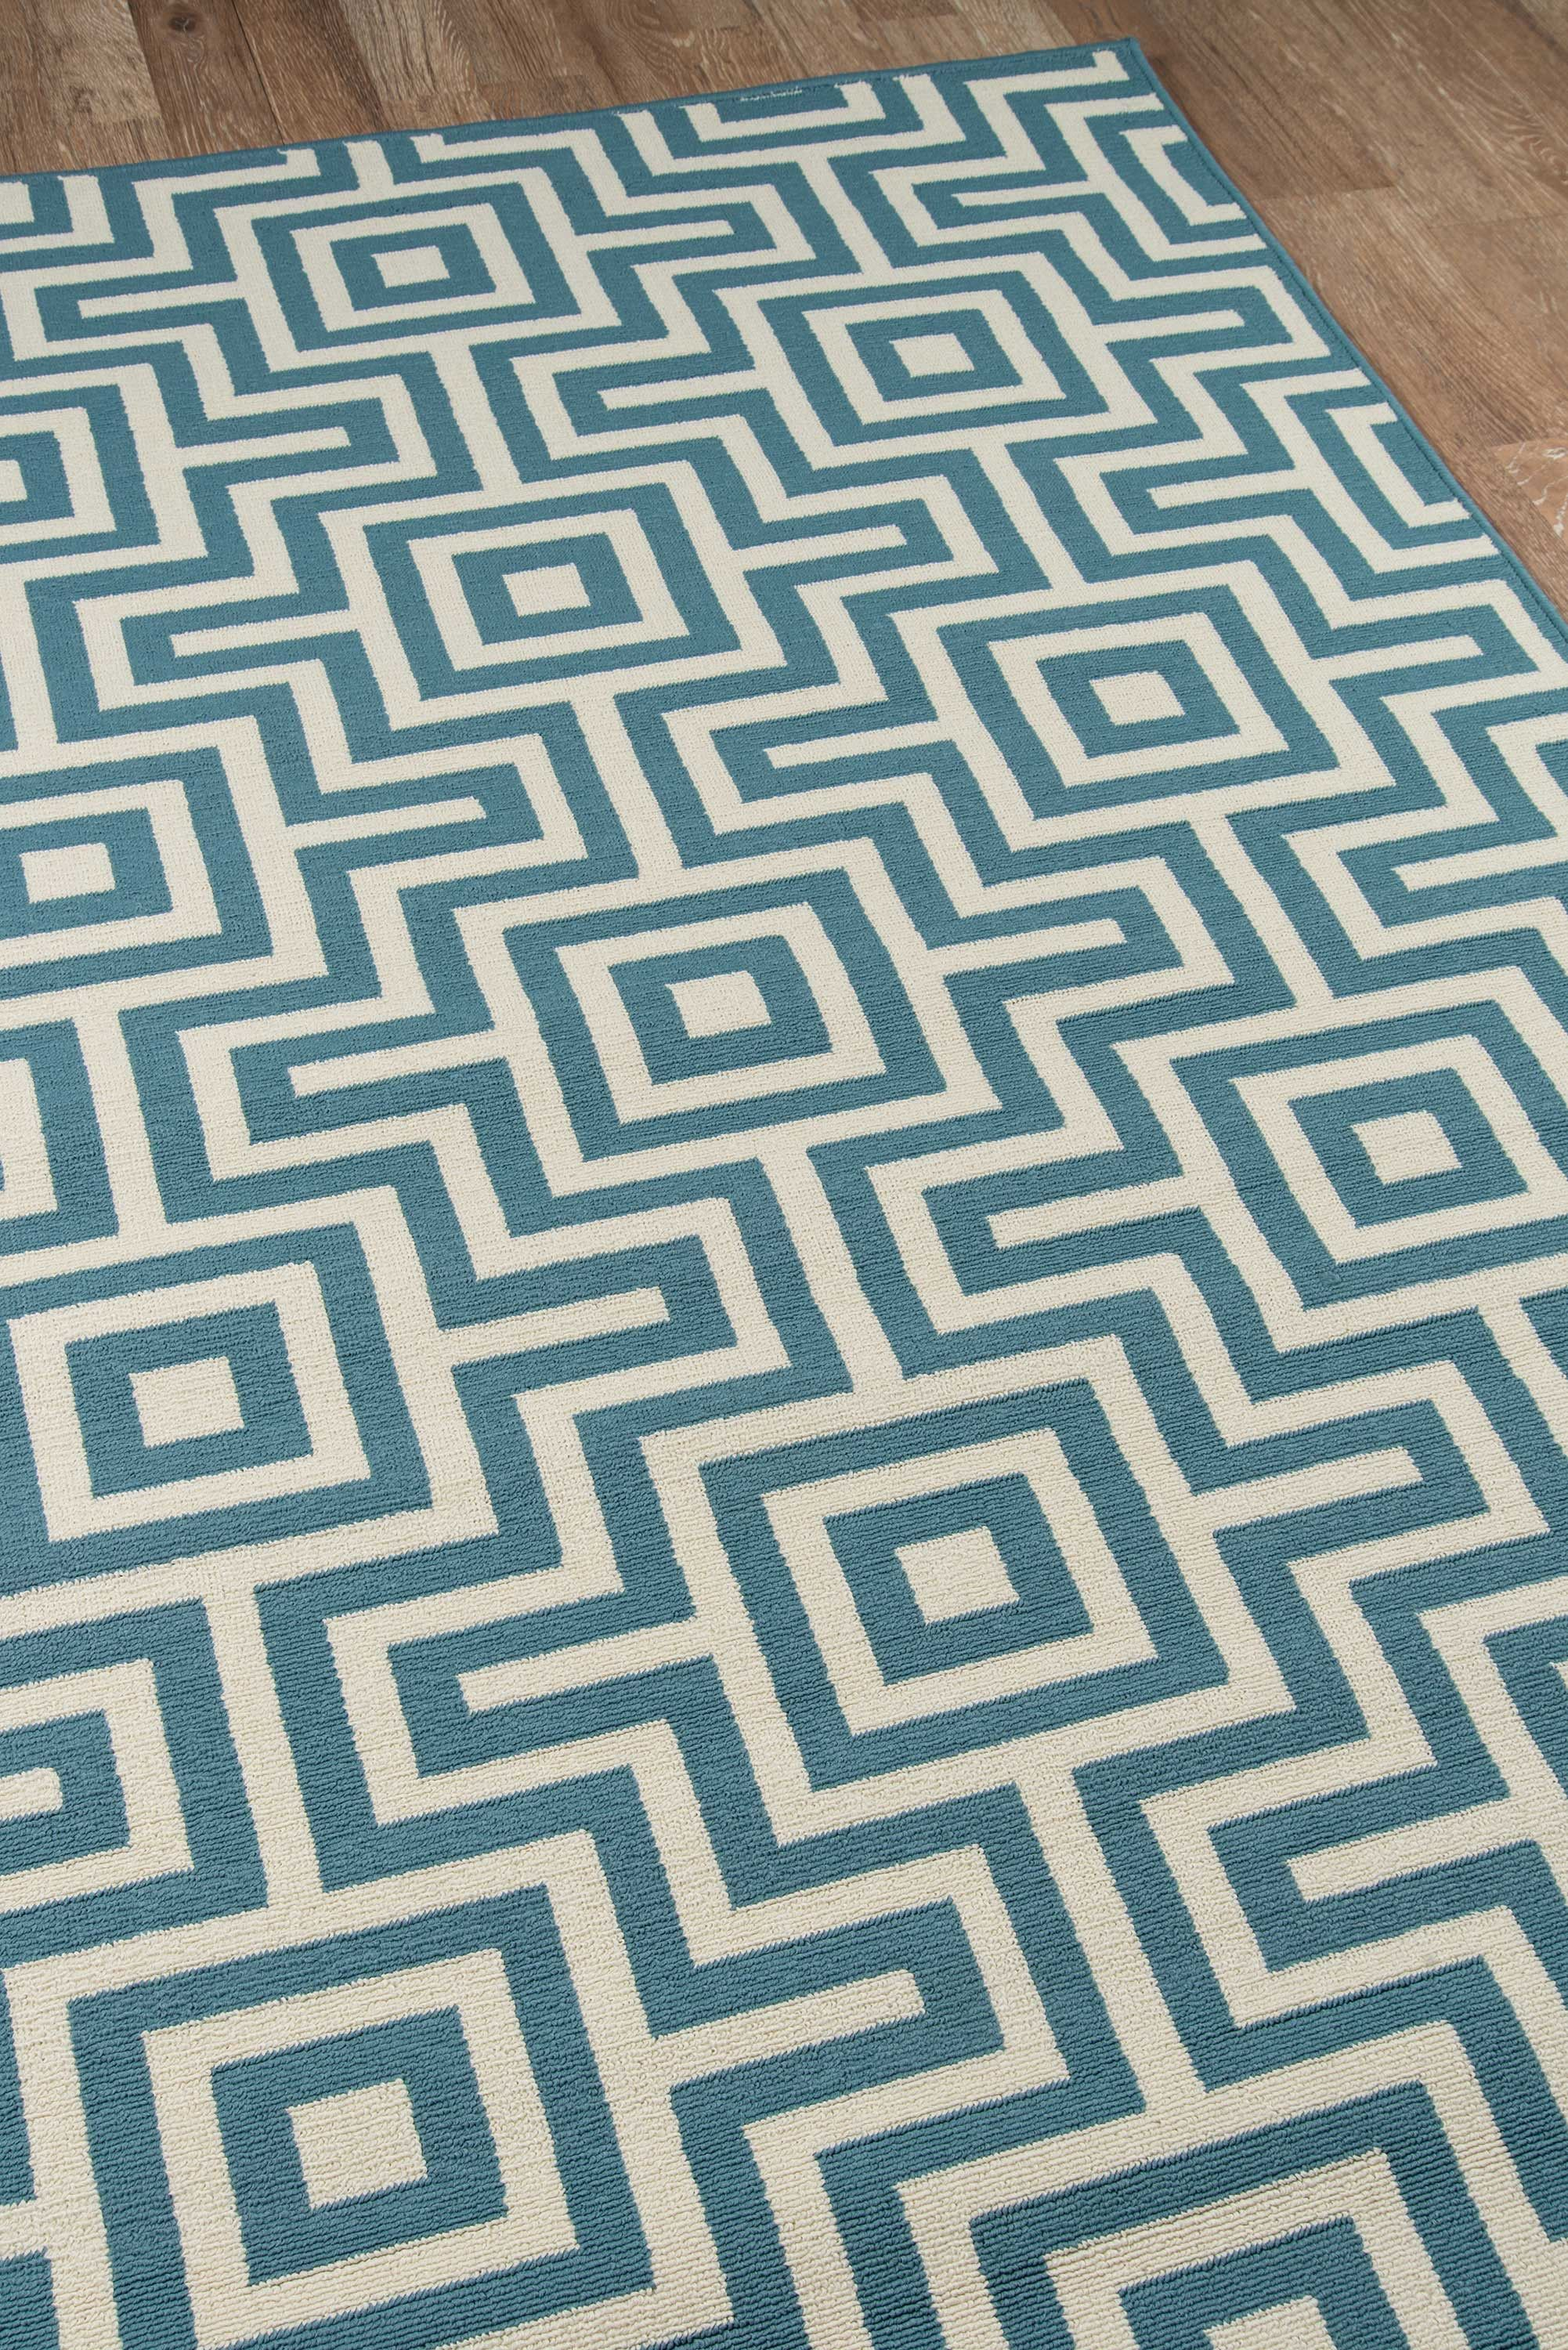 Pearl White Teal Blue Geometric Modern Rug Multiple Sizes Geometric Rug Rugs Rugs On Carpet